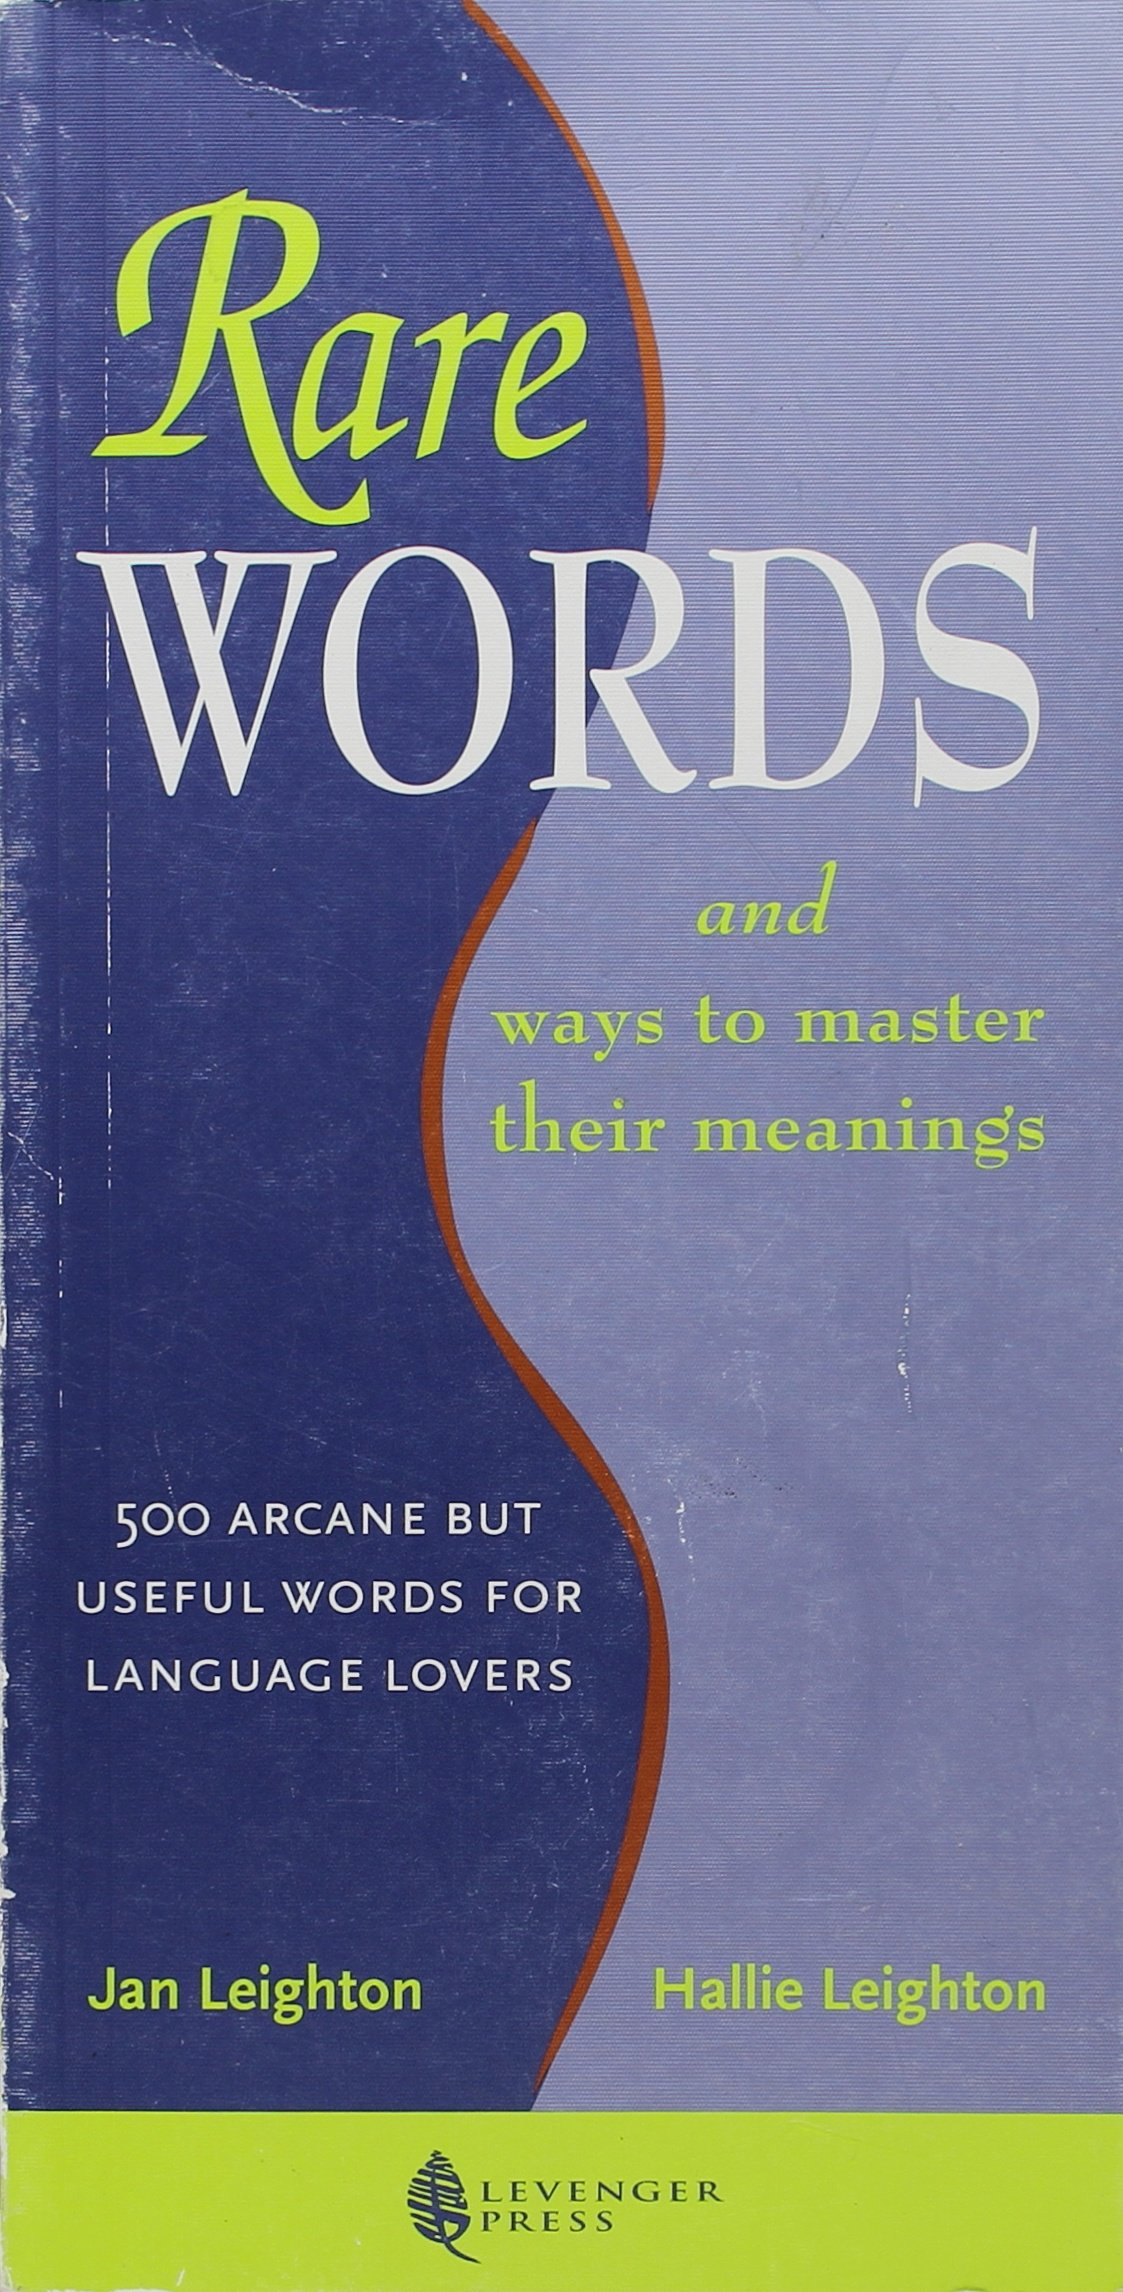 Rare Words and Ways to Master Their Meanings: 500 Arcane but Useful